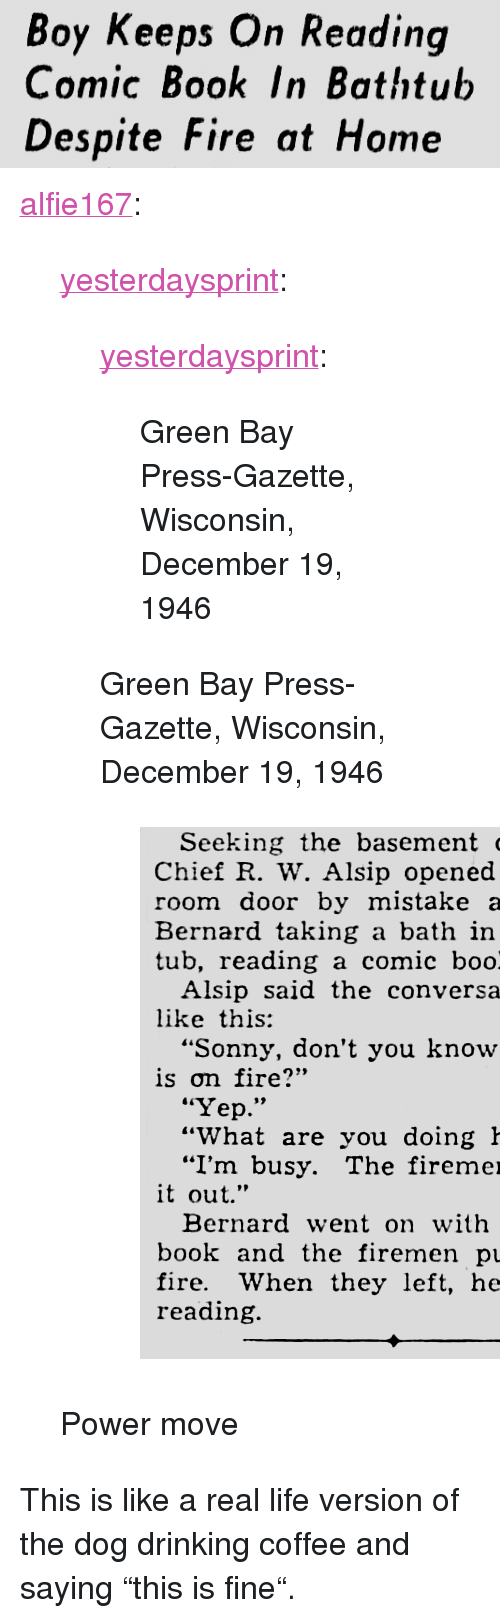 "Gazette: Boy Keeps On Reading  Comic Book In Bathtub  Despite Fire at Home <p><a href=""https://alfie167.tumblr.com/post/170468702570/yesterdaysprint-yesterdaysprint-green-bay"" class=""tumblr_blog"">alfie167</a>:</p>  <blockquote><p><a href=""http://yesterdays-print.com/post/170130226824/yesterdaysprint-green-bay-press-gazette"" class=""tumblr_blog"">yesterdaysprint</a>:</p> <blockquote> <p><a href=""http://yesterdays-print.com/post/170129982319/green-bay-press-gazette-wisconsin-december-19"" class=""tumblr_blog"">yesterdaysprint</a>:</p> <blockquote><p> Green Bay Press-Gazette, Wisconsin, December 19, 1946<br/></p></blockquote> <p>Green Bay Press-Gazette, Wisconsin, December 19, 1946<br/></p> <figure class=""tmblr-full"" data-orig-height=""532"" data-orig-width=""509""><img src=""https://78.media.tumblr.com/95cb15a67774631dacc45049280742f0/tumblr_inline_p34xcpsUn11sgr92o_540.png"" data-orig-height=""532"" data-orig-width=""509""/></figure></blockquote>  <p>Power move</p></blockquote>  <p>This is like a real life version of the dog drinking coffee and saying ""this is fine"".</p>"